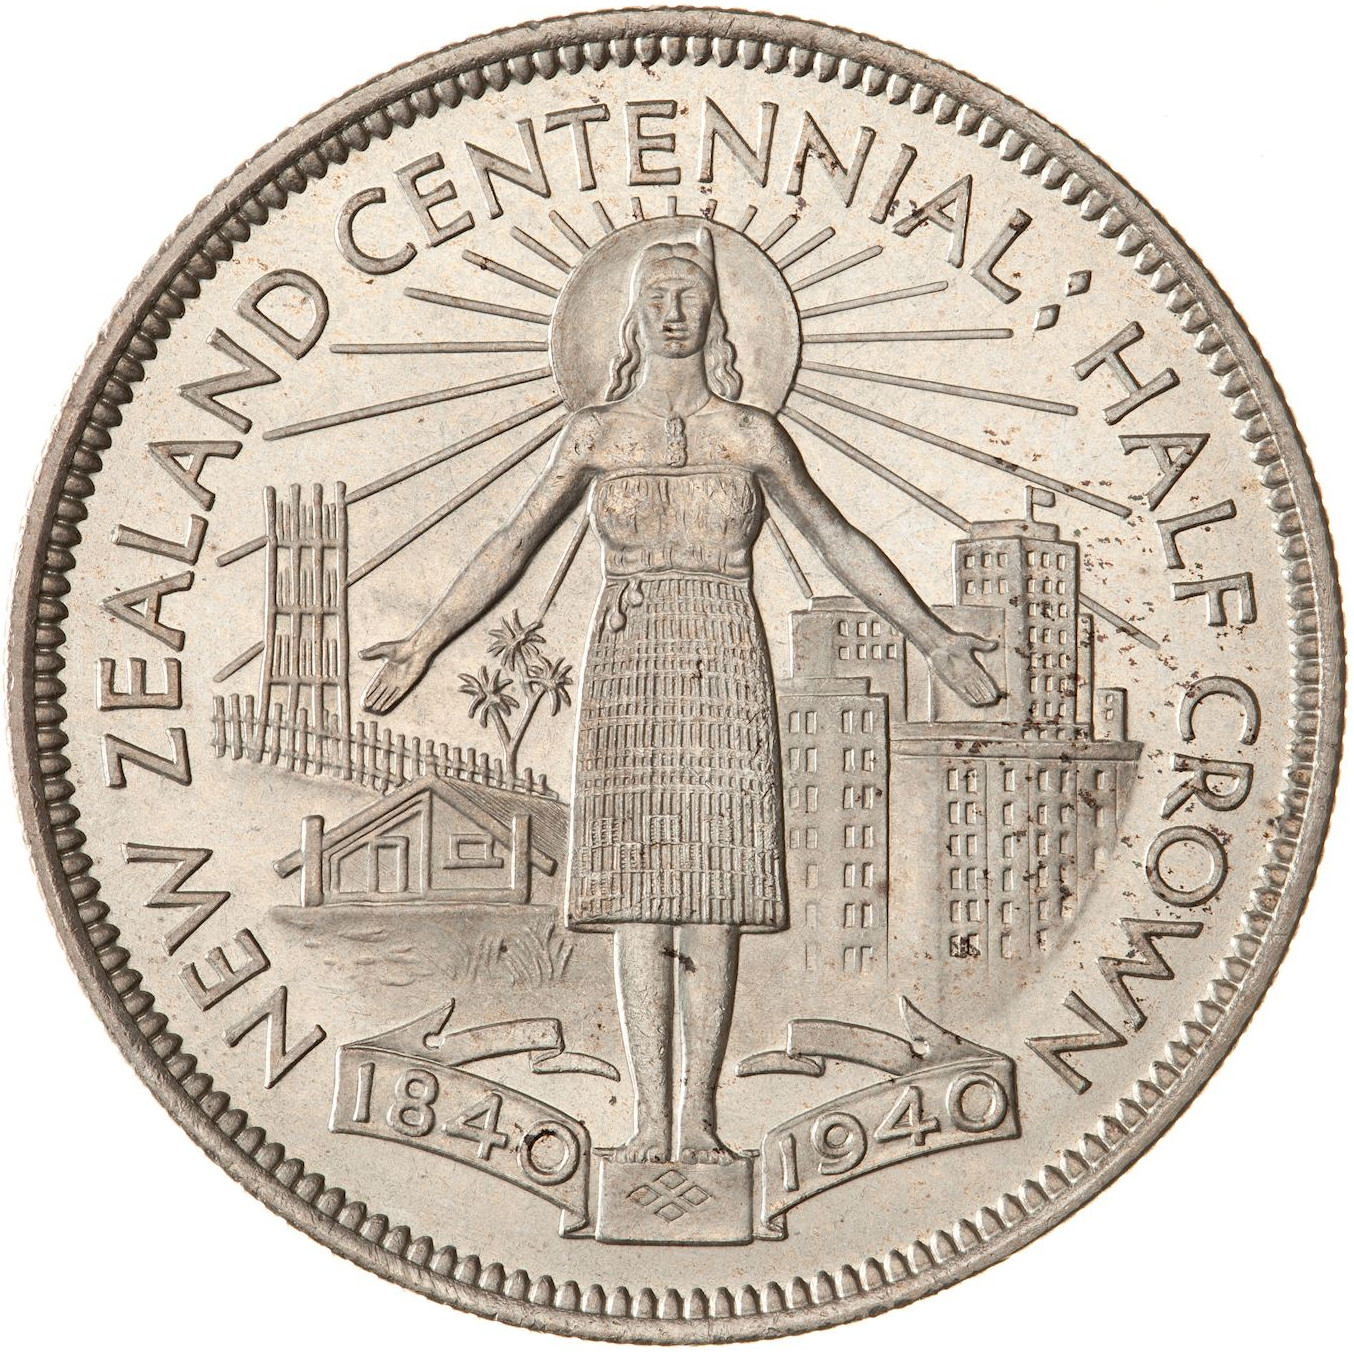 Half Crown 1940 (Centennial): Photo Proof Coin - 1/2 Crown, New Zealand, 1940